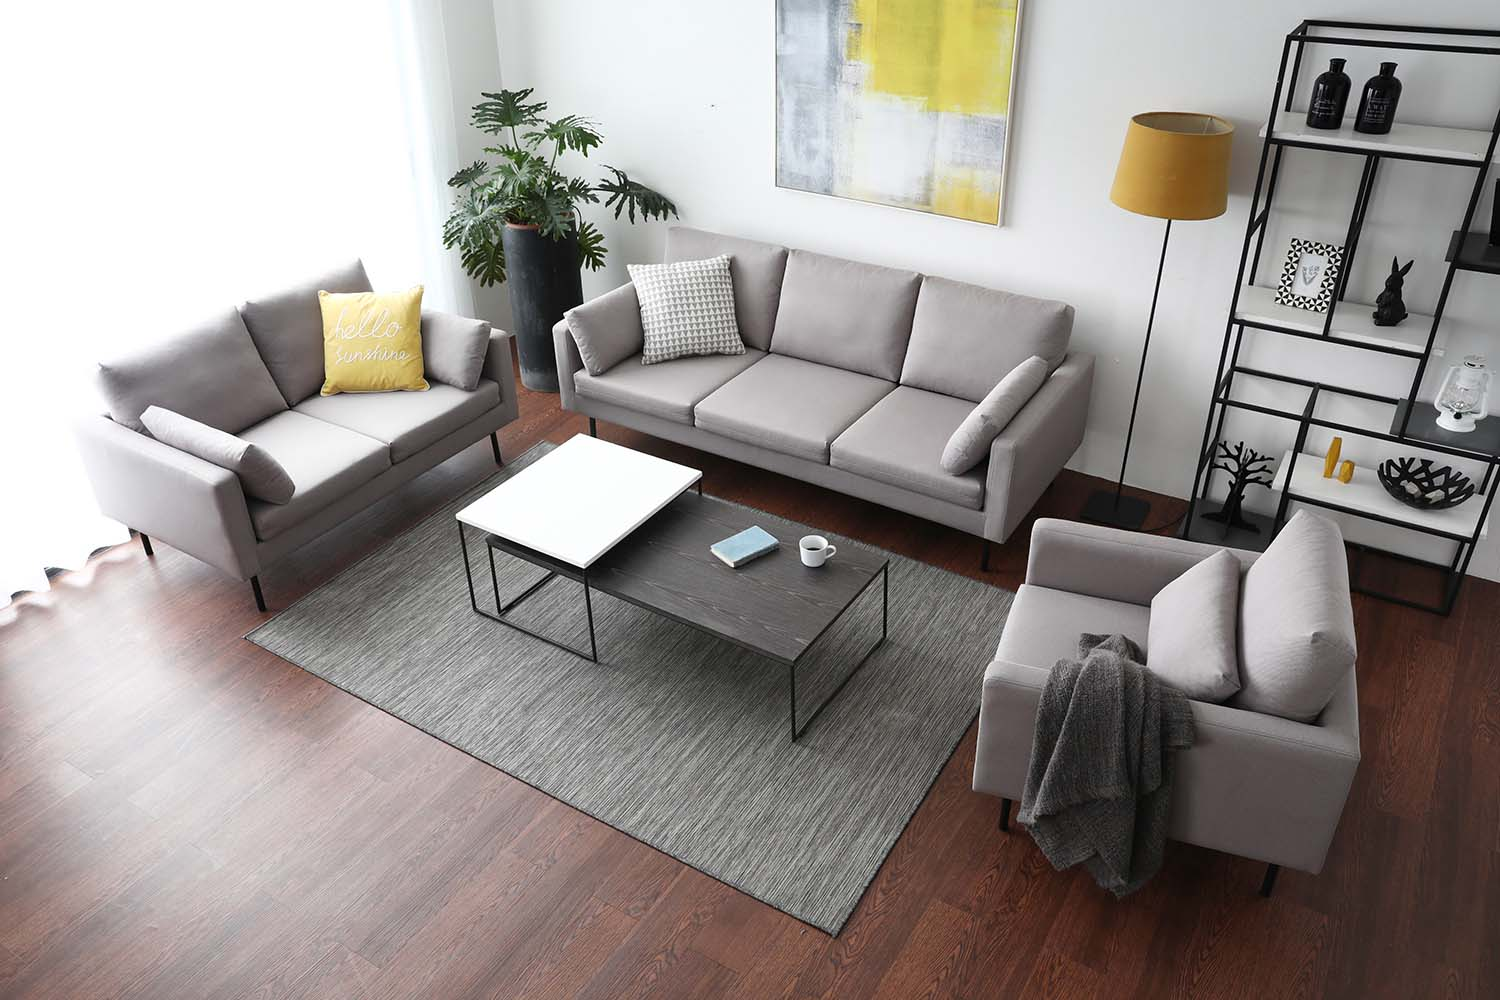 Comes in two calming shades of grey, the Luna Sofa collection is easy to match.